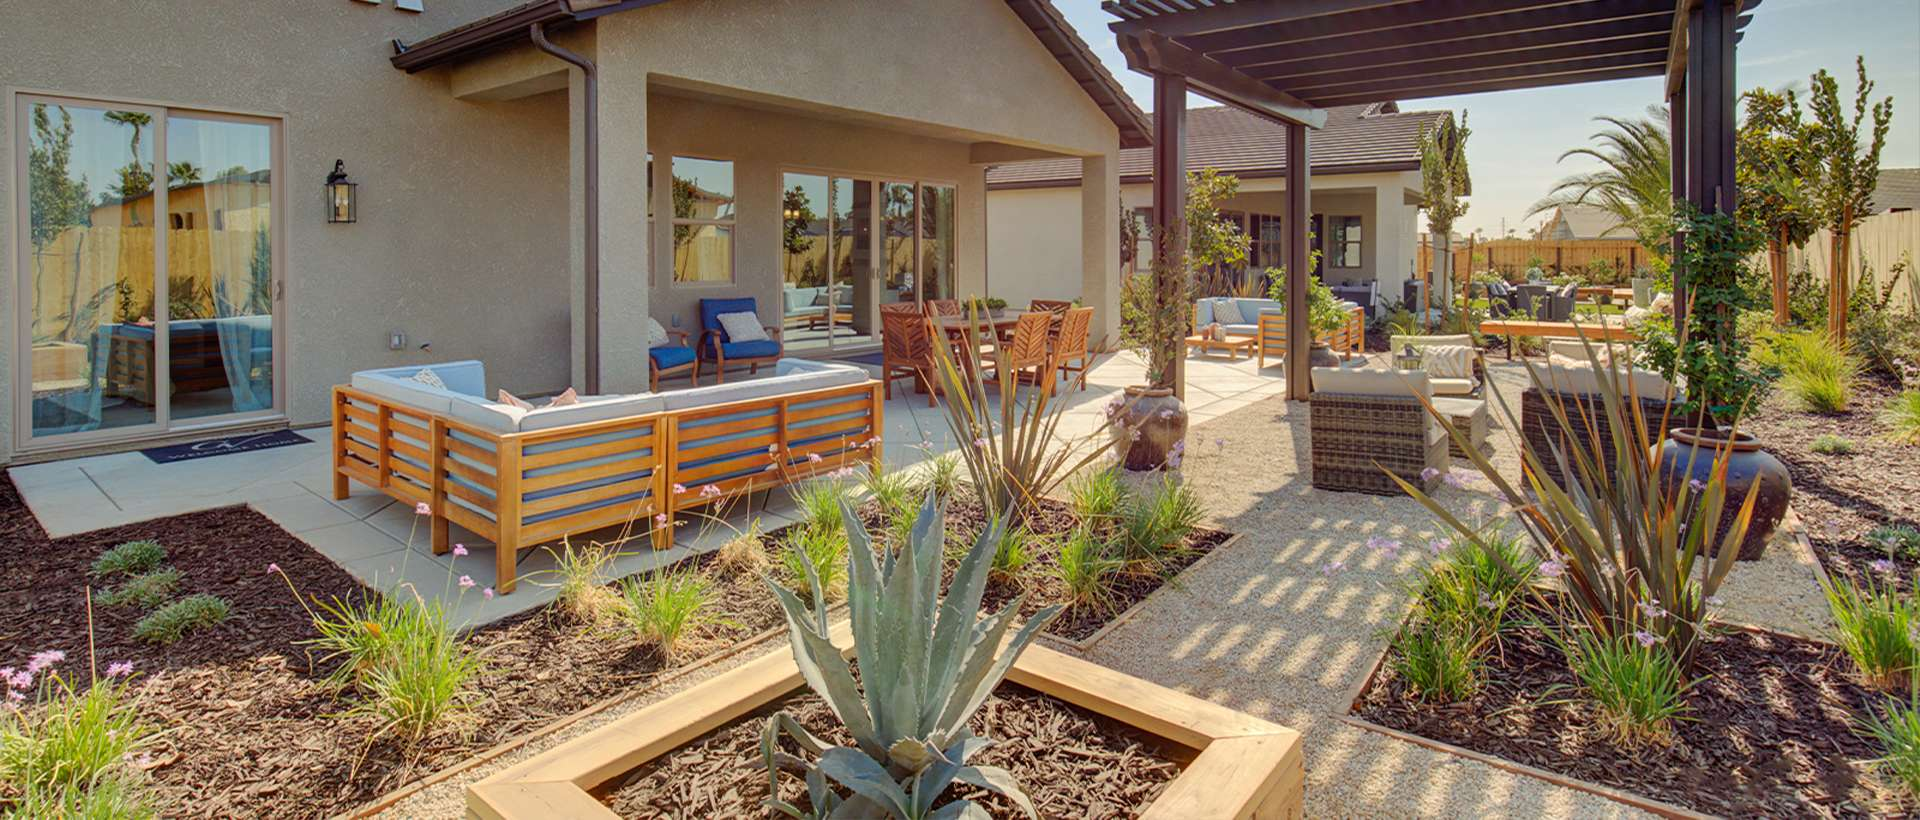 Drought tolerant backyard and patio landscaping with a pergola.